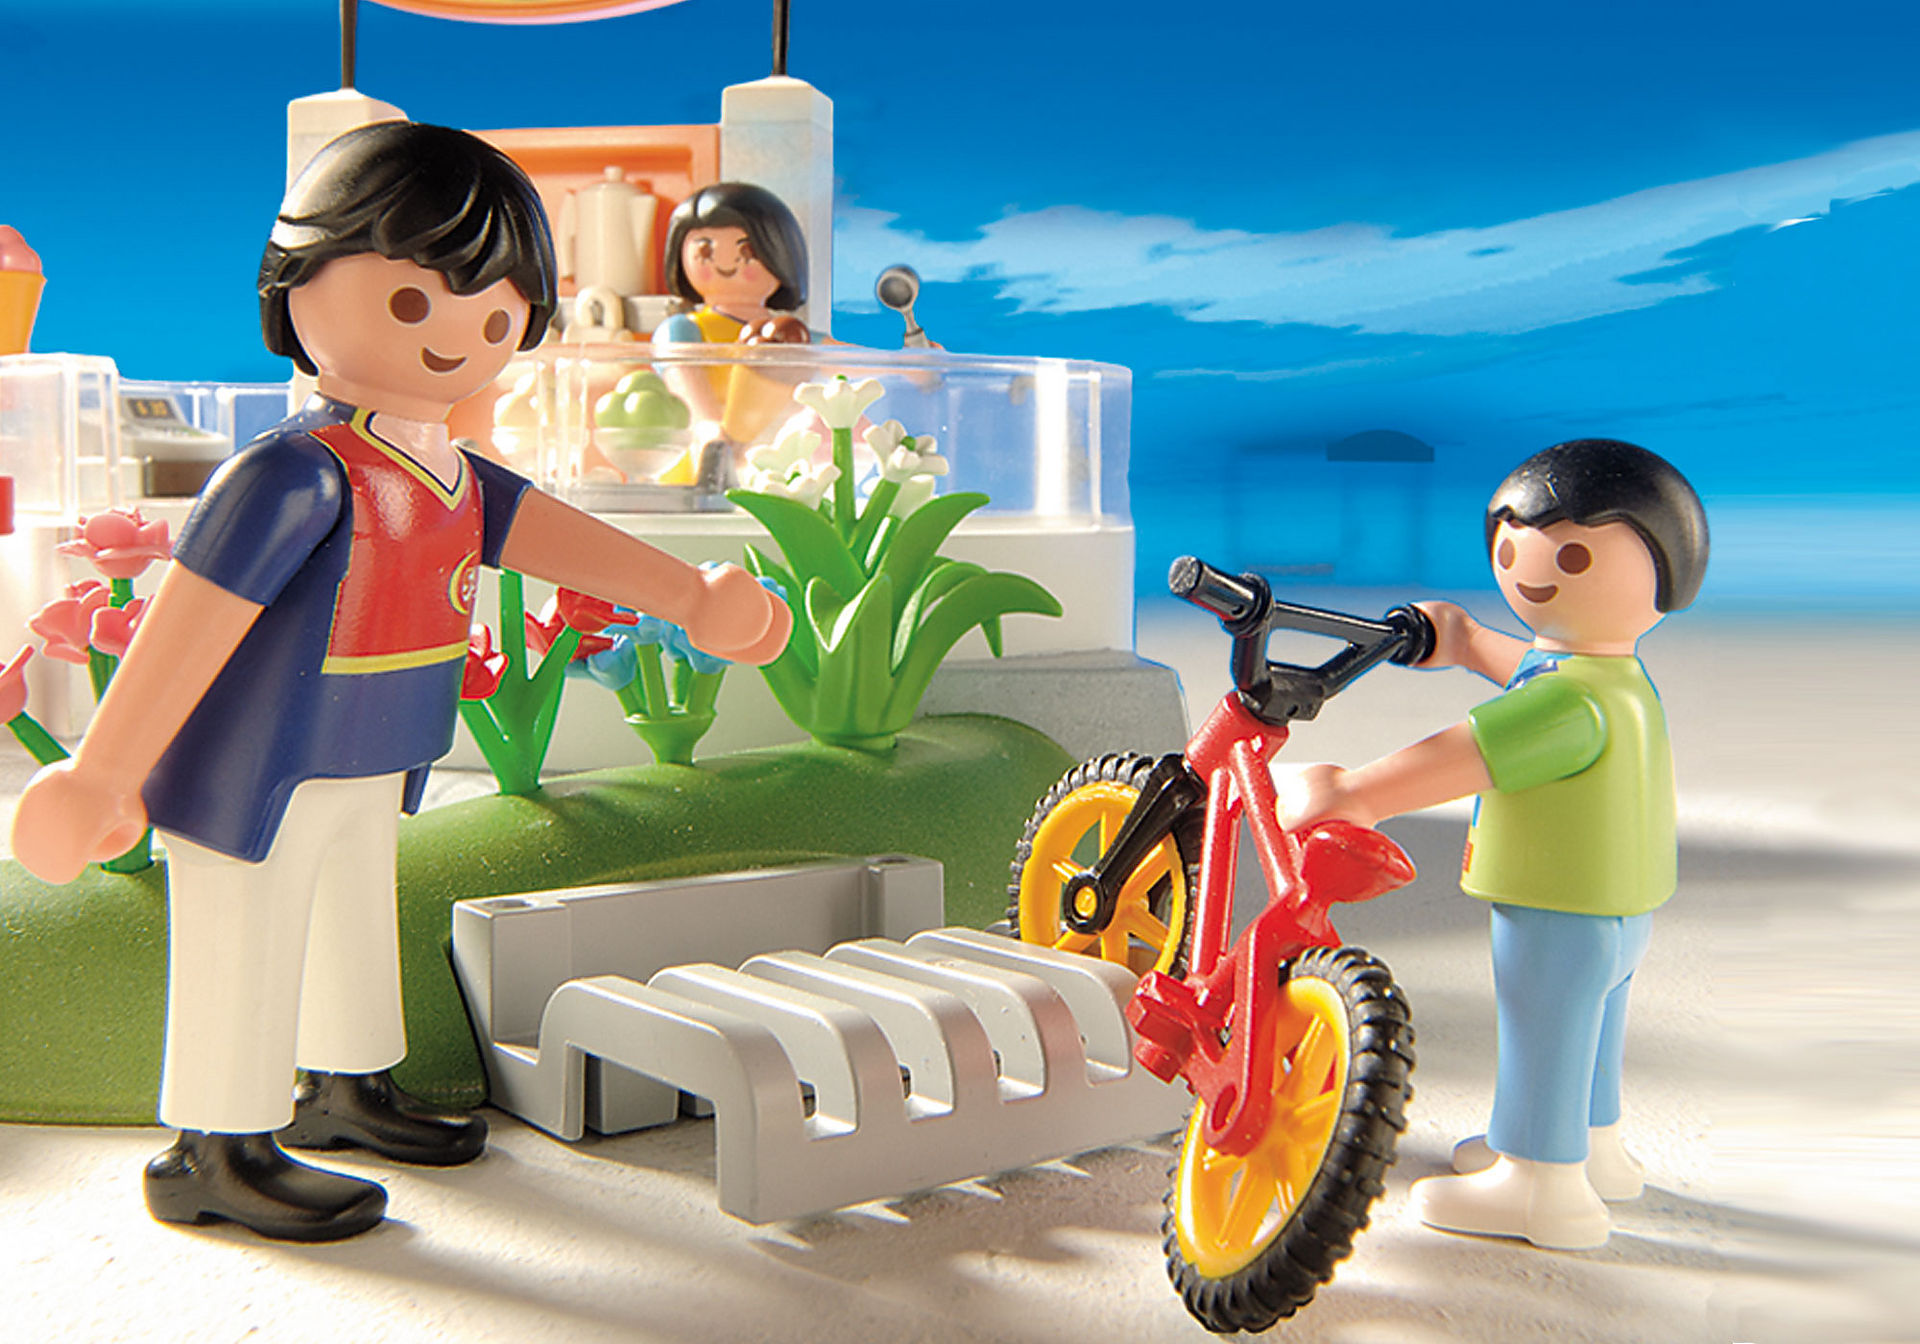 http://media.playmobil.com/i/playmobil/4134_product_extra3/Superset Marchand de glaces